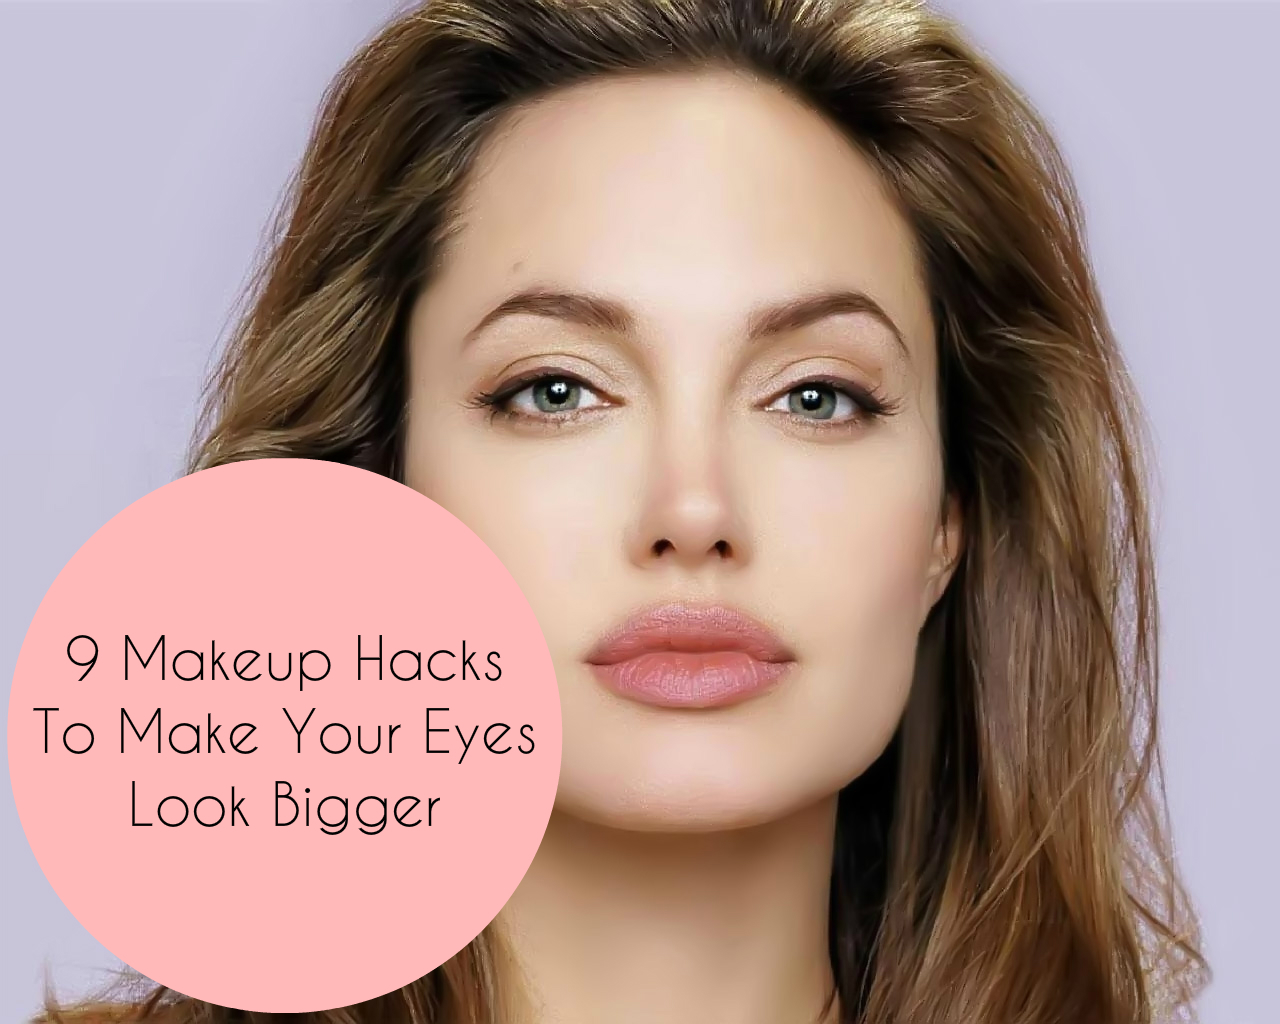 9 Makeup Hacks To Make Your Eyes Look Bigger1